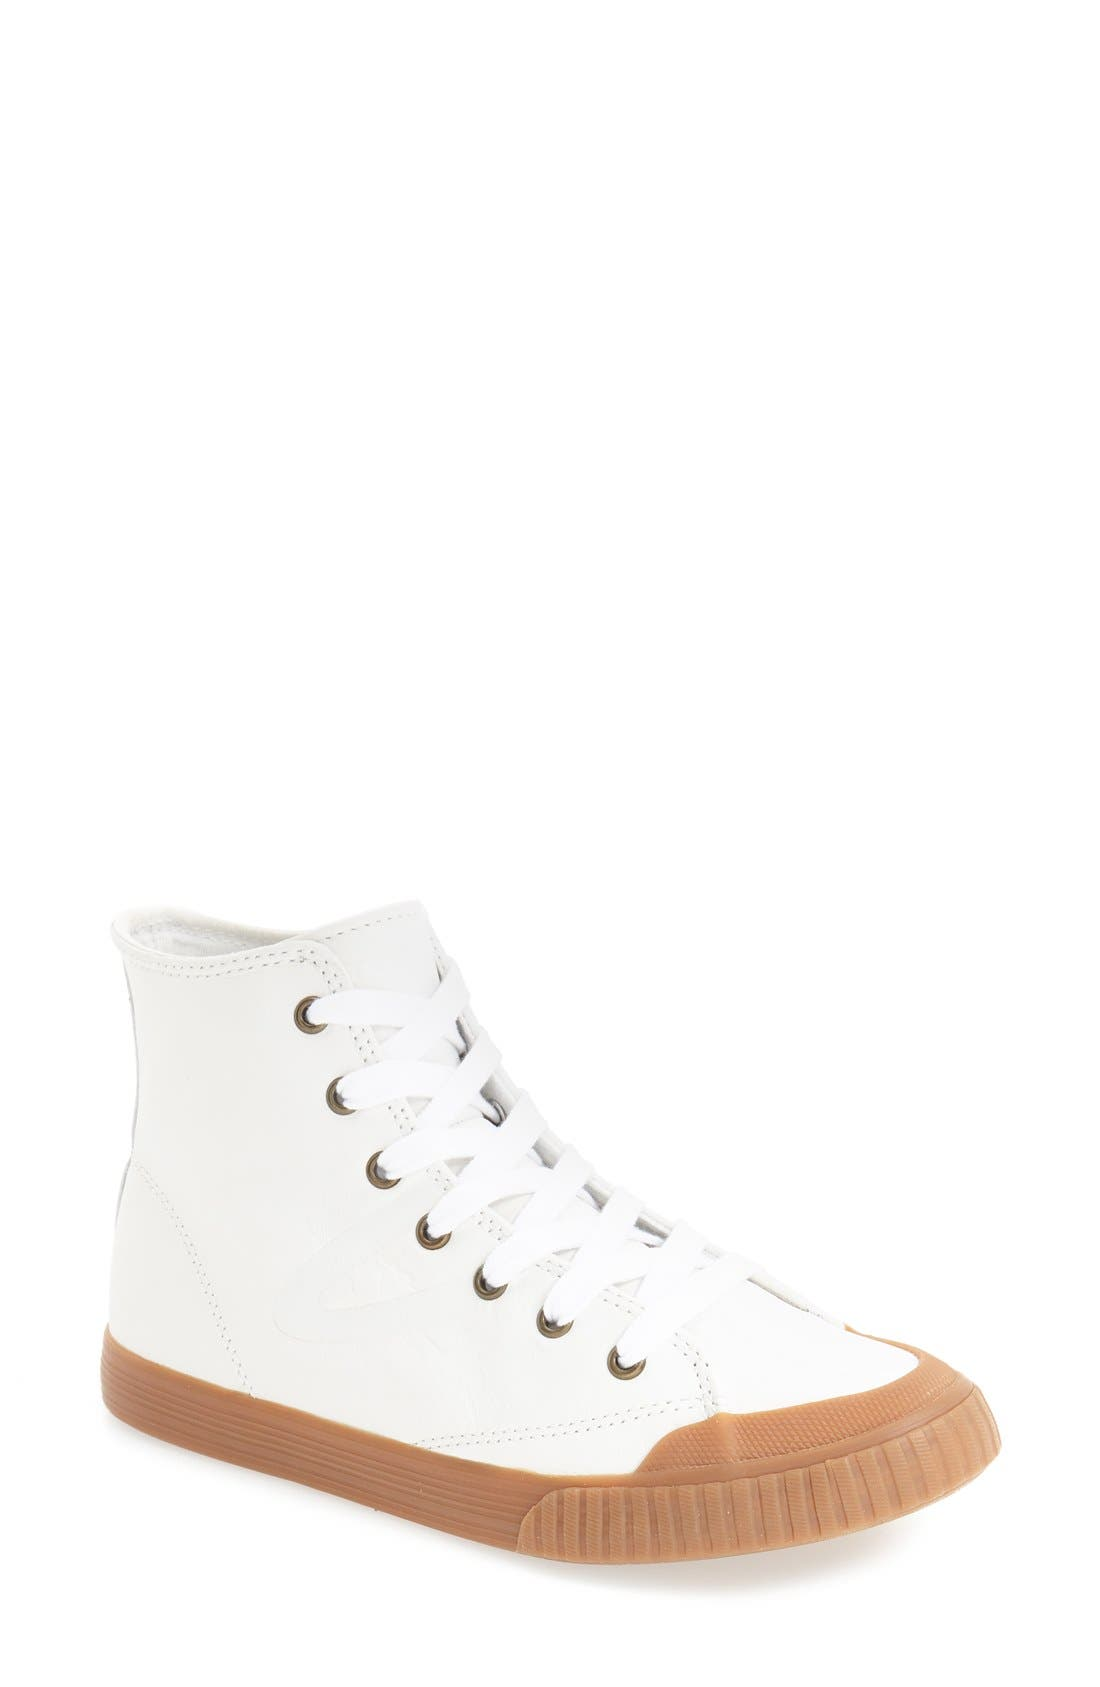 Marley 2 High Top Sneaker,                         Main,                         color, White